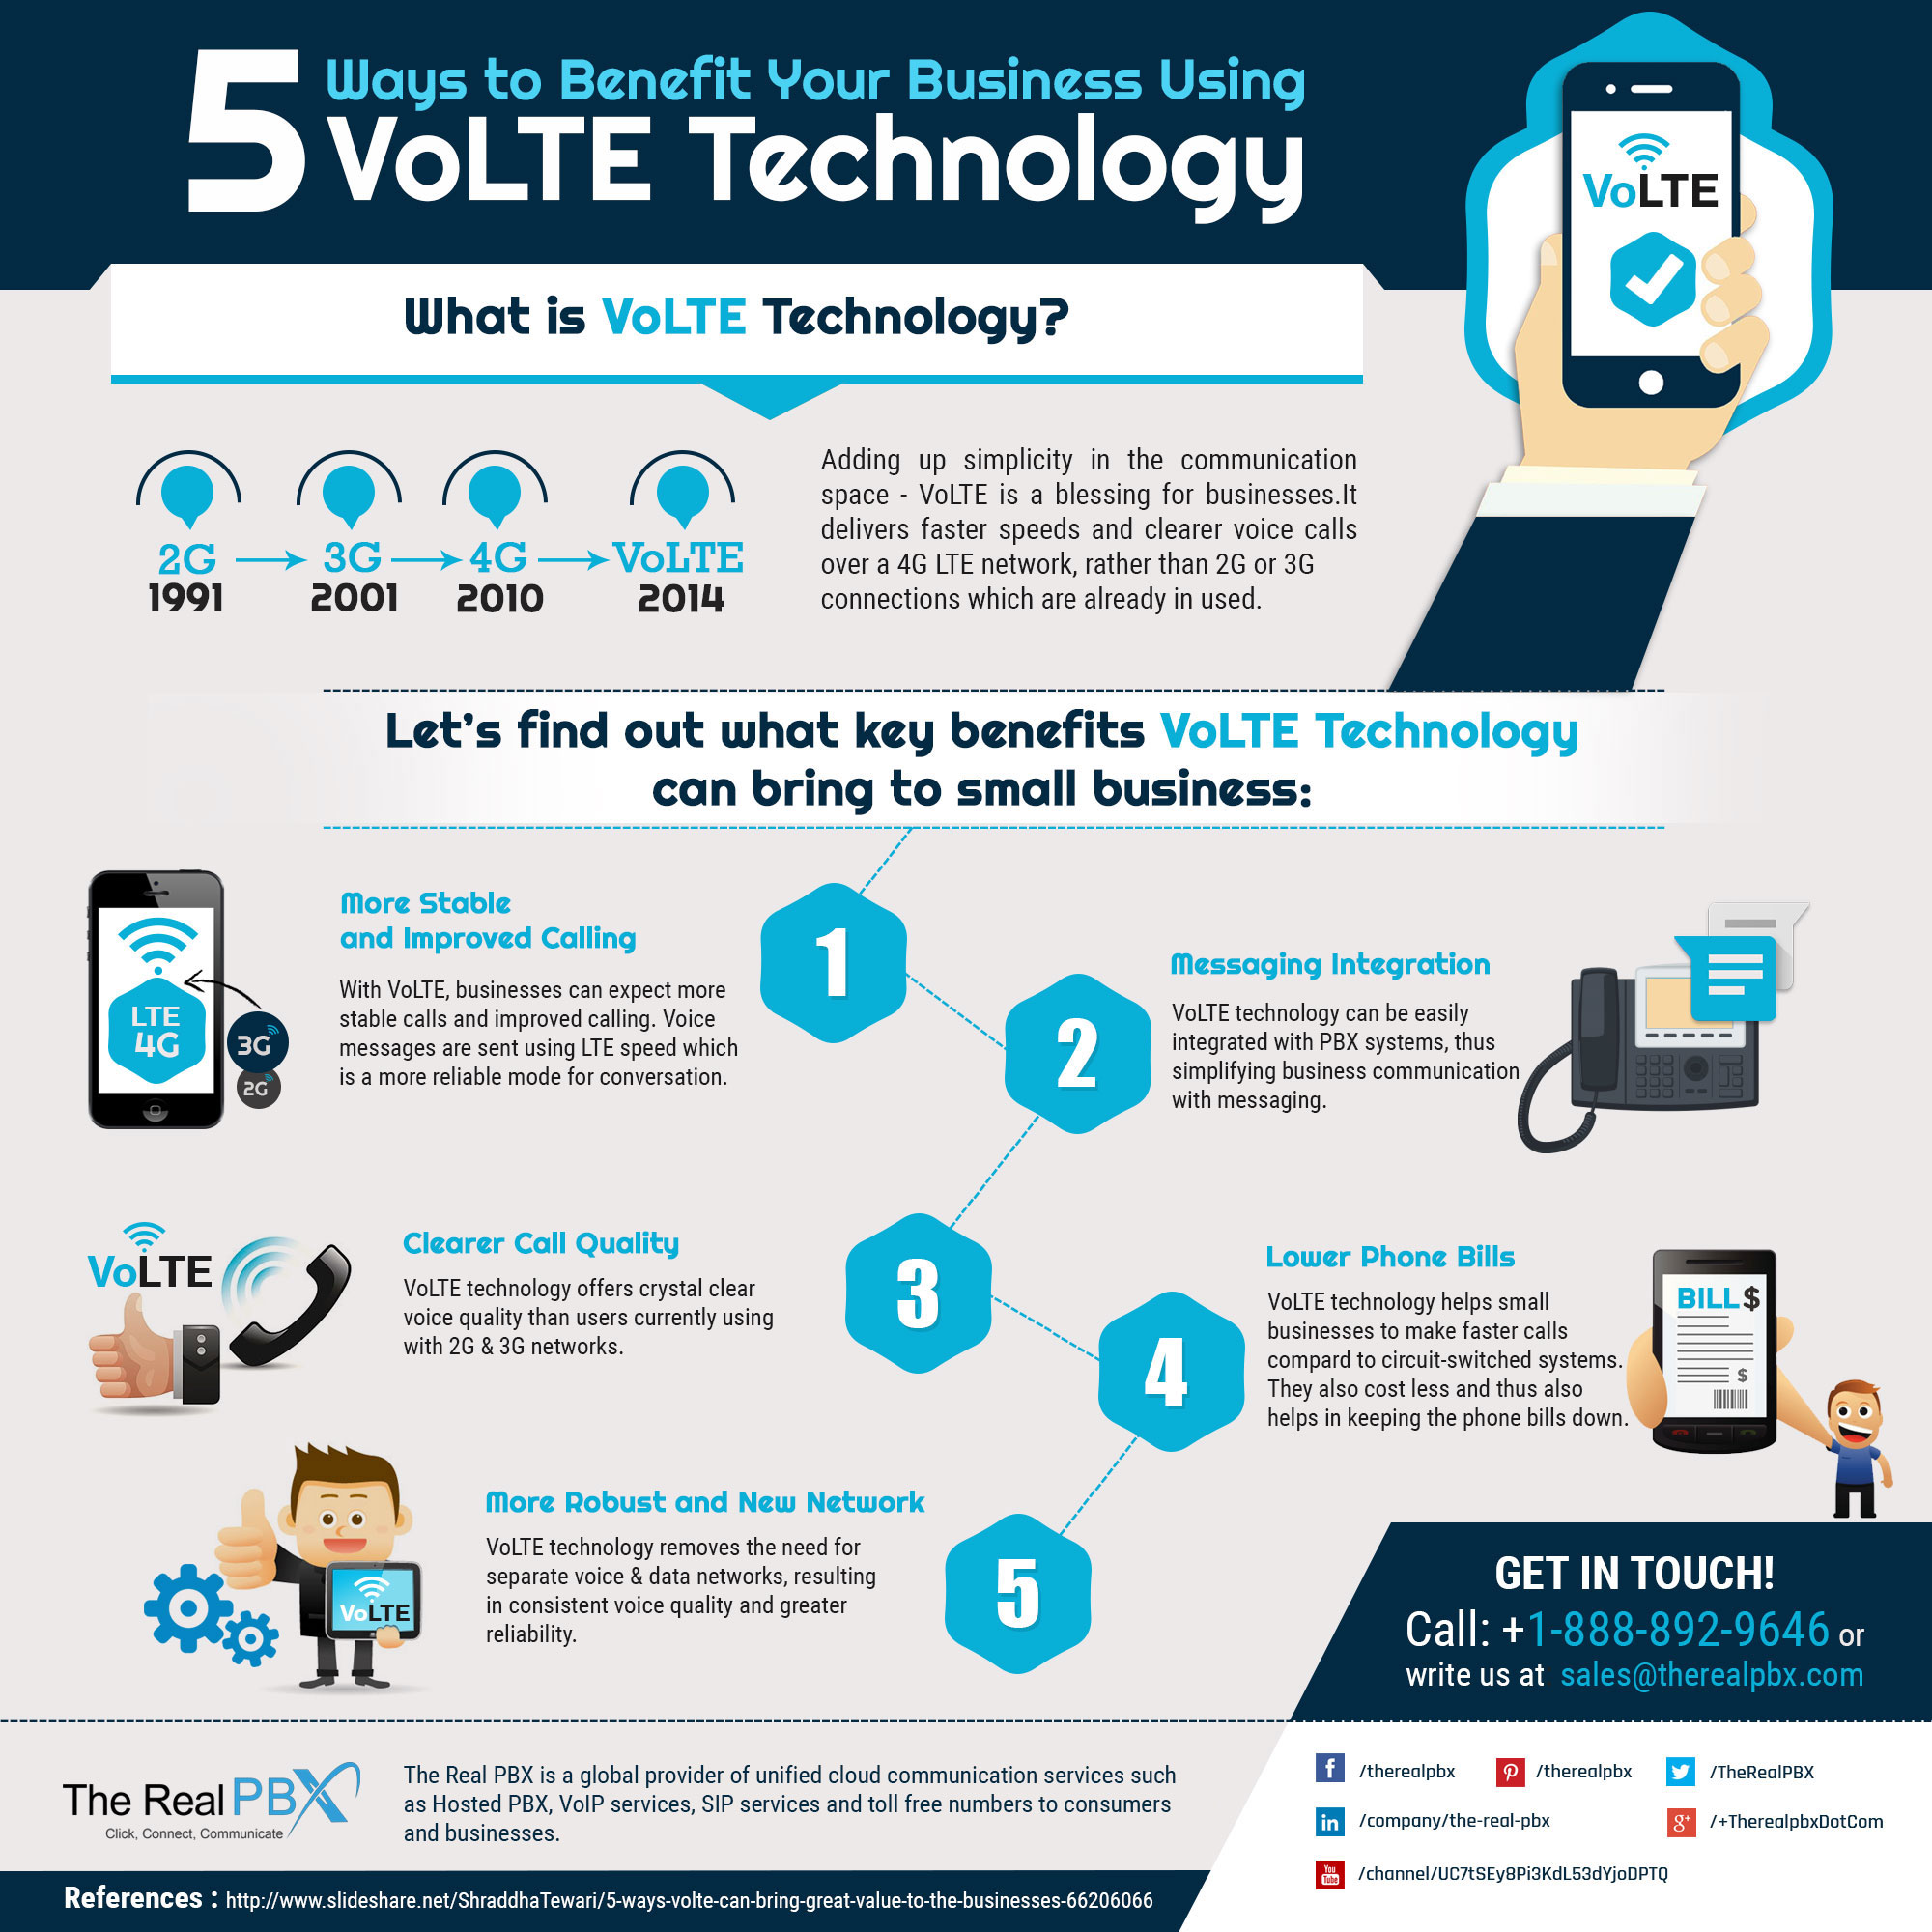 5-ways-to-benefit-your-business-using-volte-technology